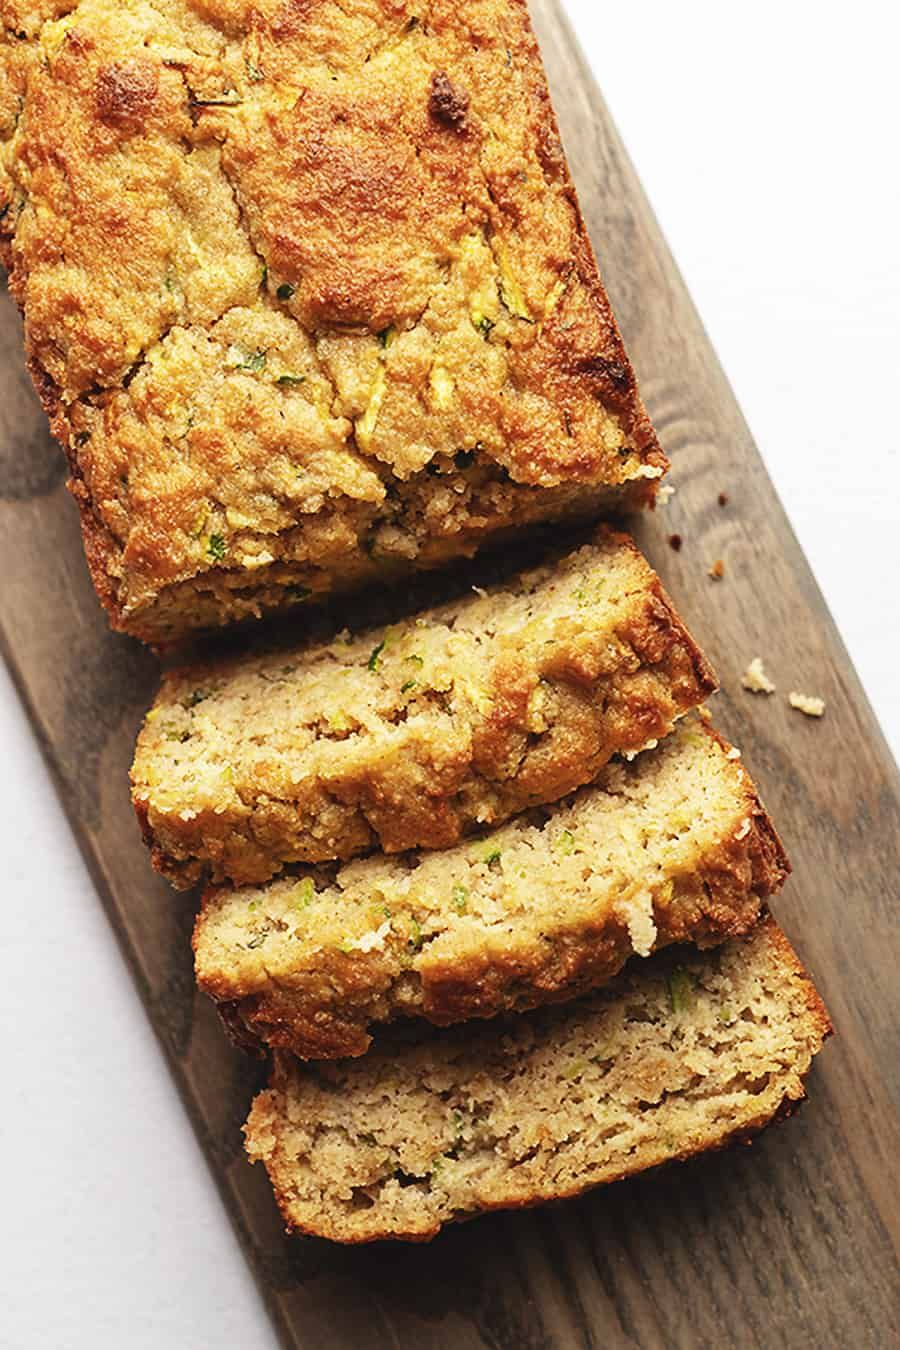 This Low Carb And Keto Zucchini Bread Is Made With Almond Flour And Is Perfectly Moist Walnuts Zucchini Bread Healthy Low Carb Zucchini Bread Best Keto Bread